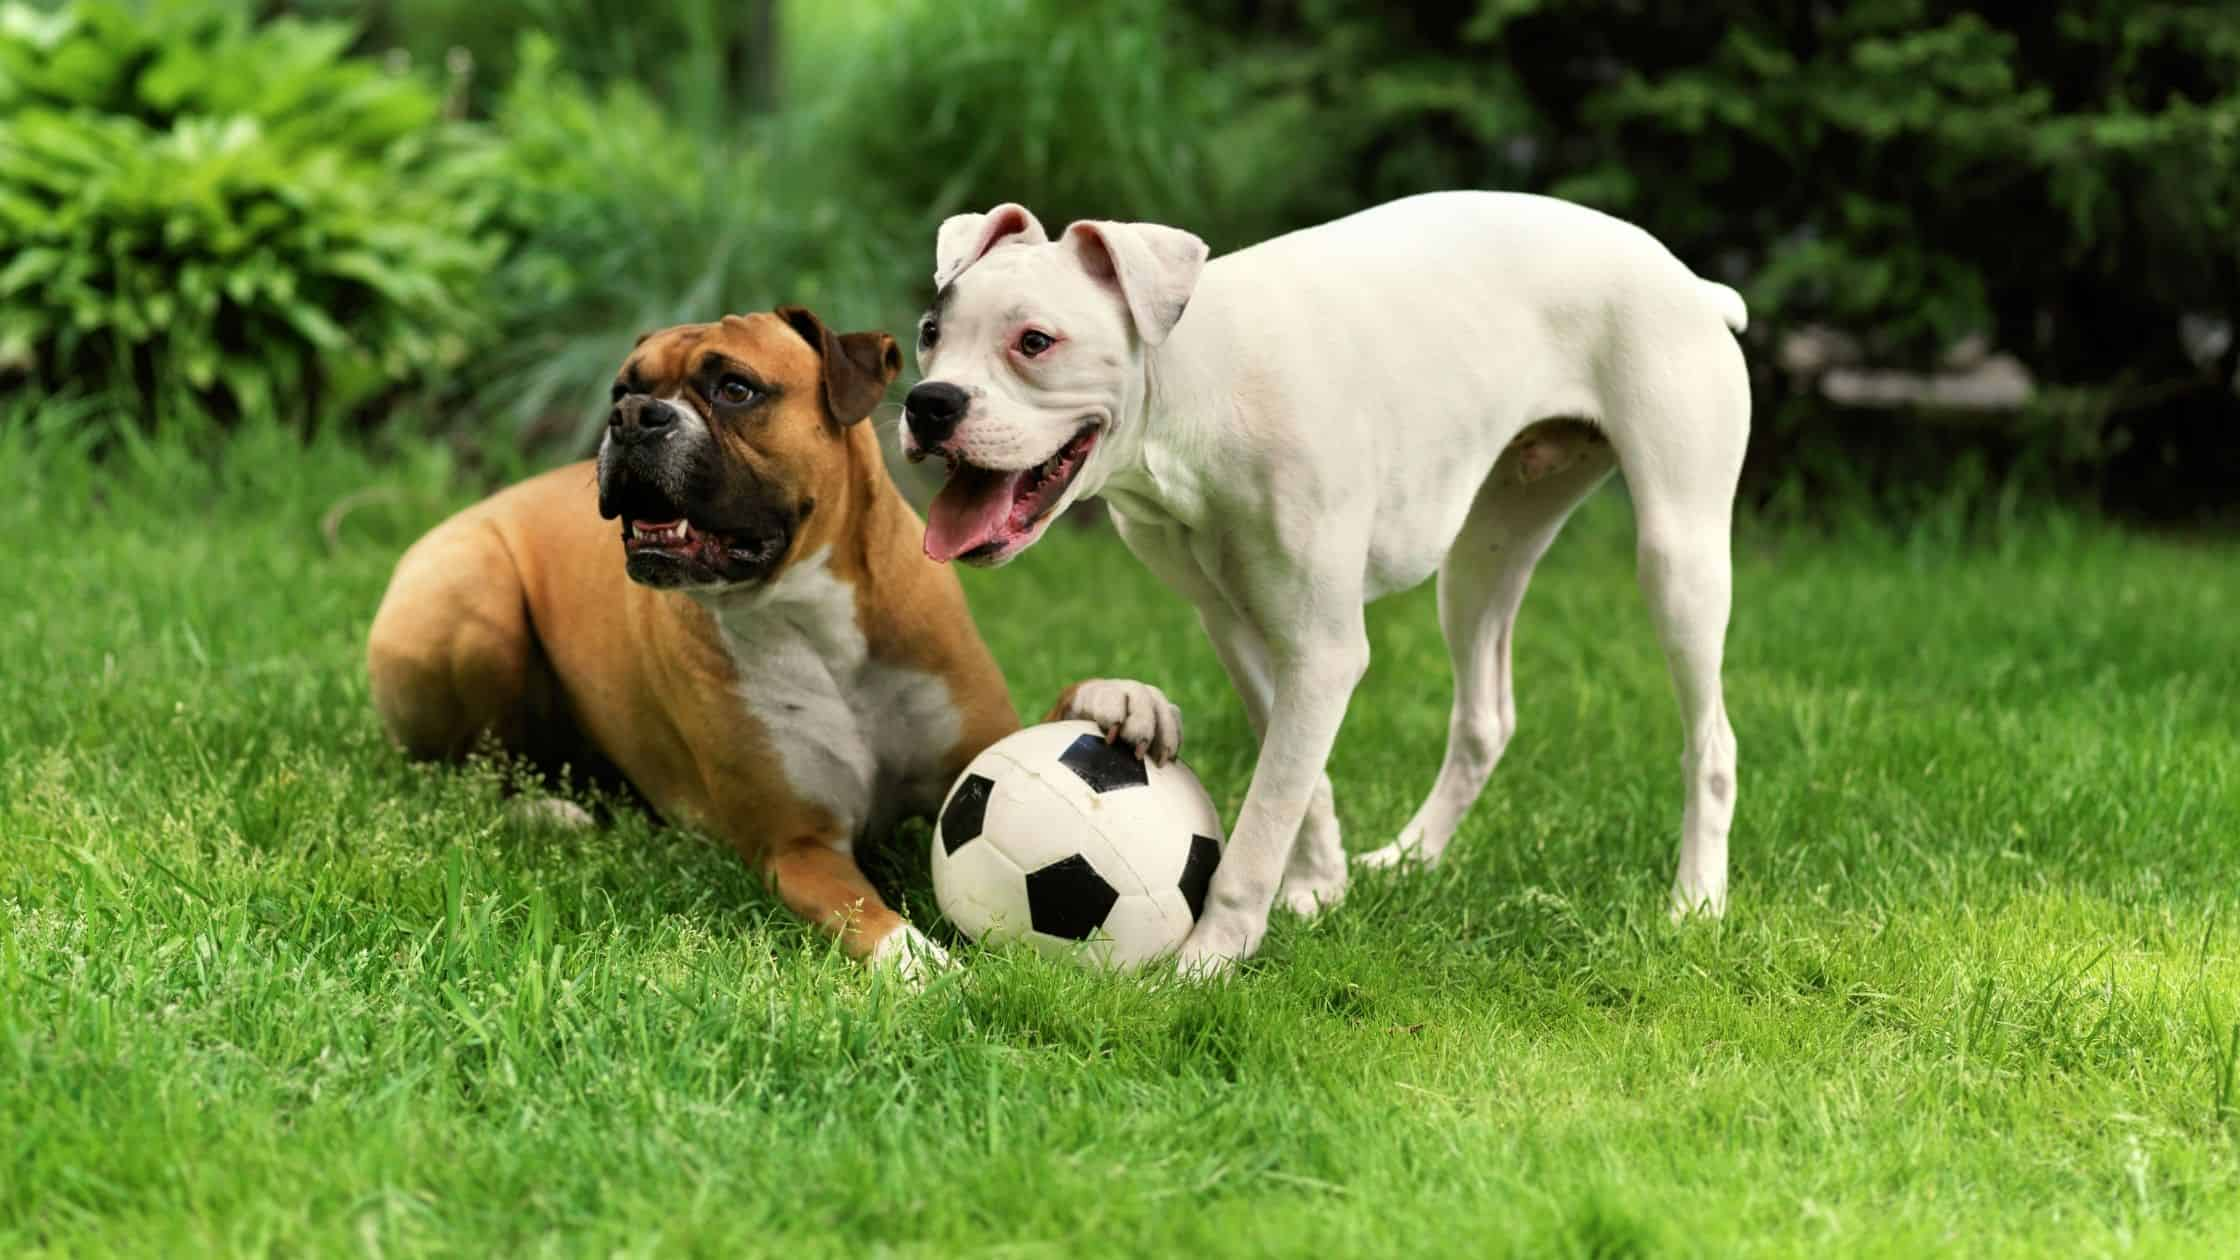 Two Boxer Dogs at Daycare